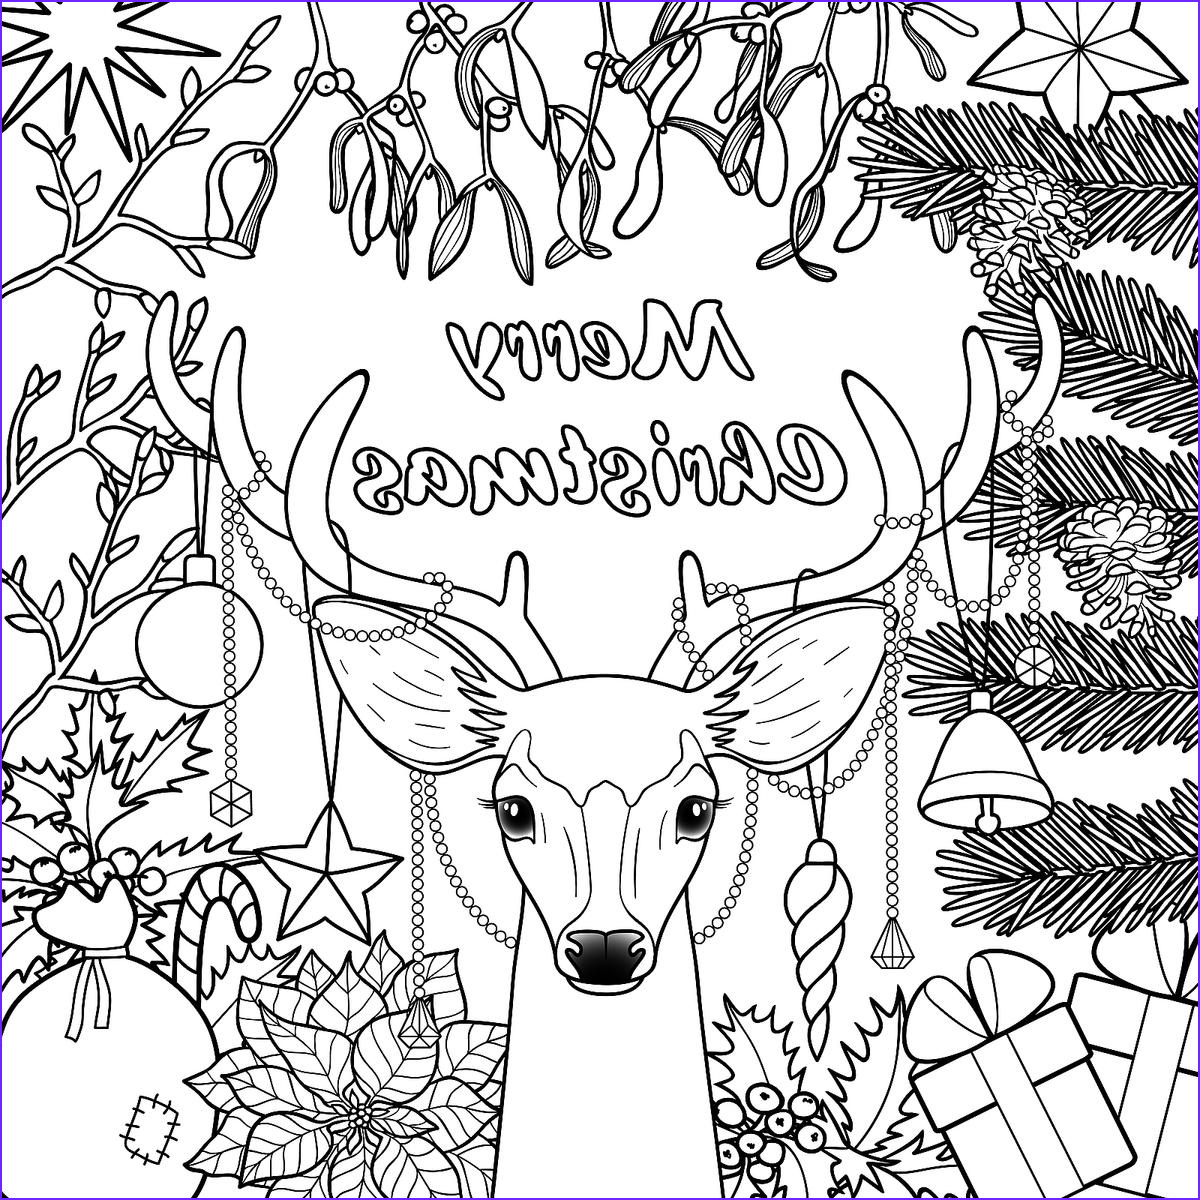 Holiday Coloring Book Awesome Stock Christmas Coloring Pages 16 Printable Coloring Pages for